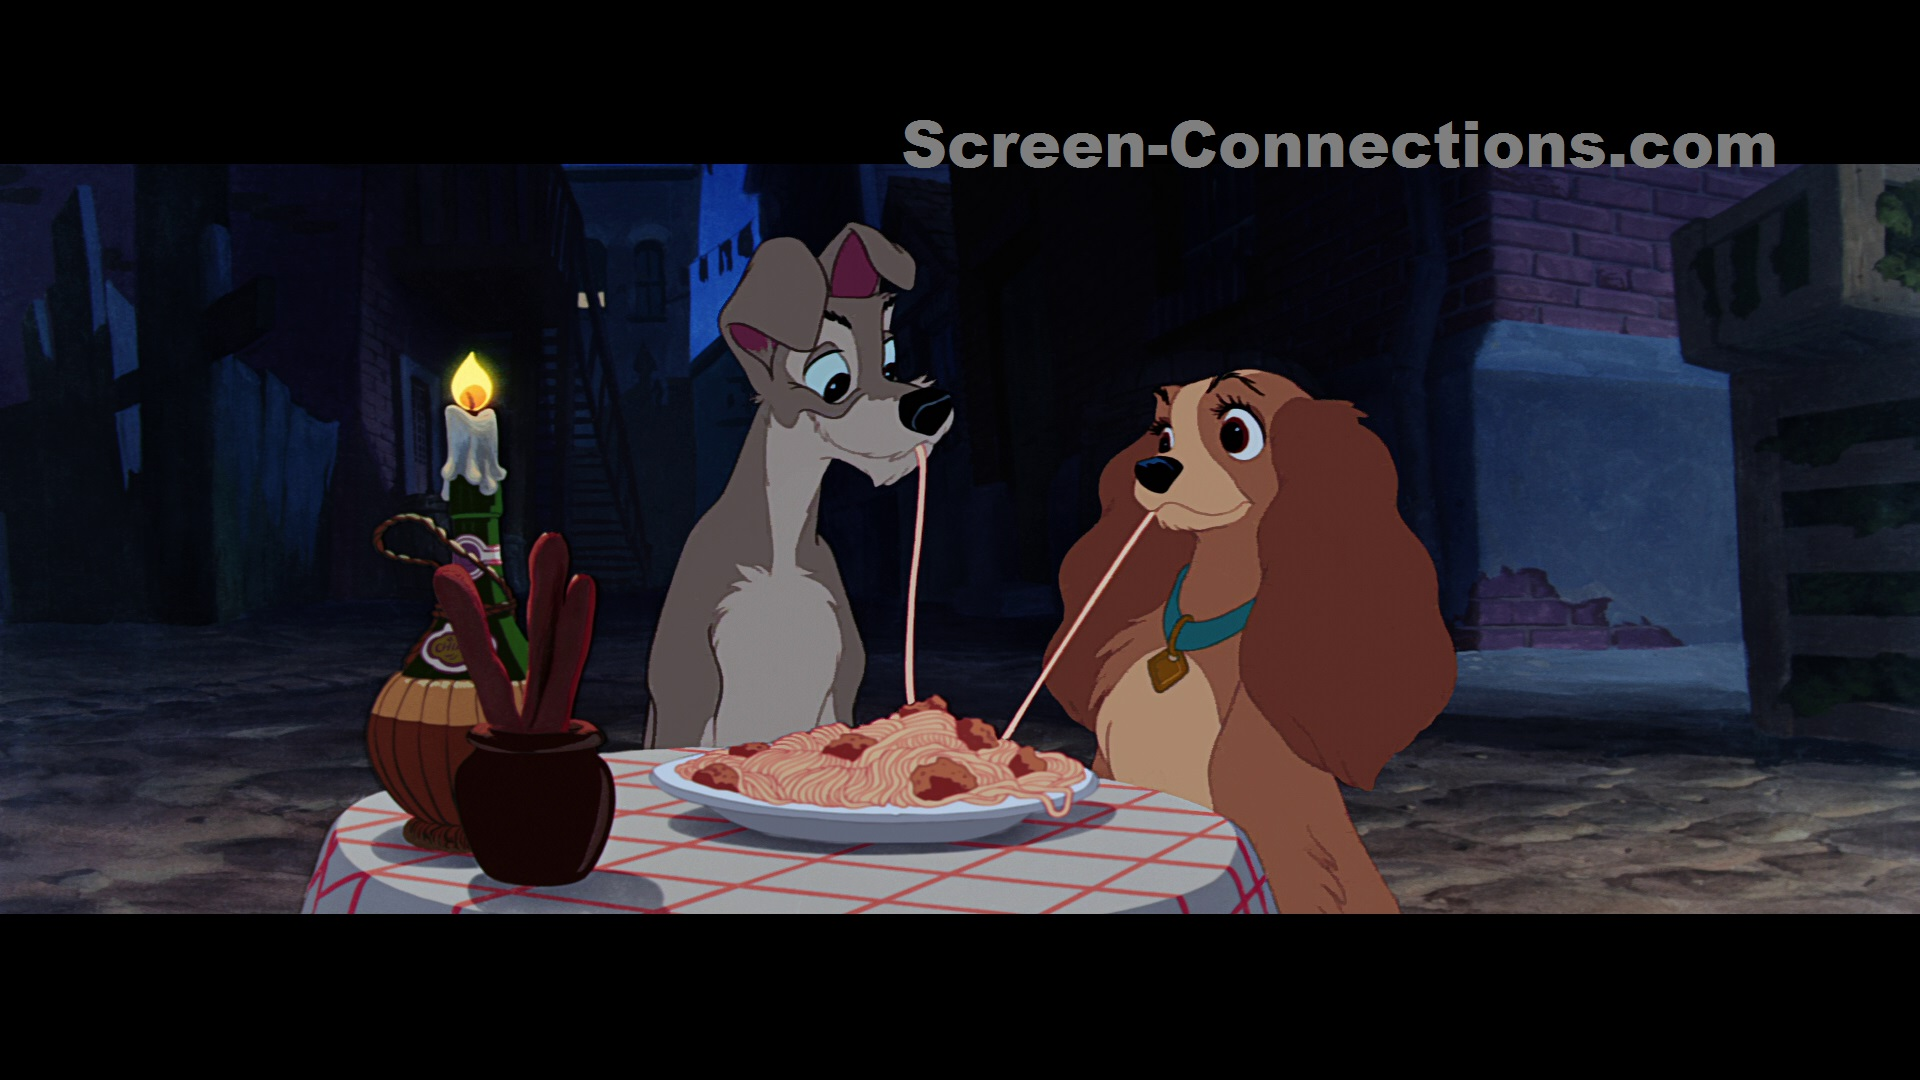 Blu Ray Review Disney S Lady And The Tramp Now Available On Signature Collection Blu Ray From Disney Screen Connections